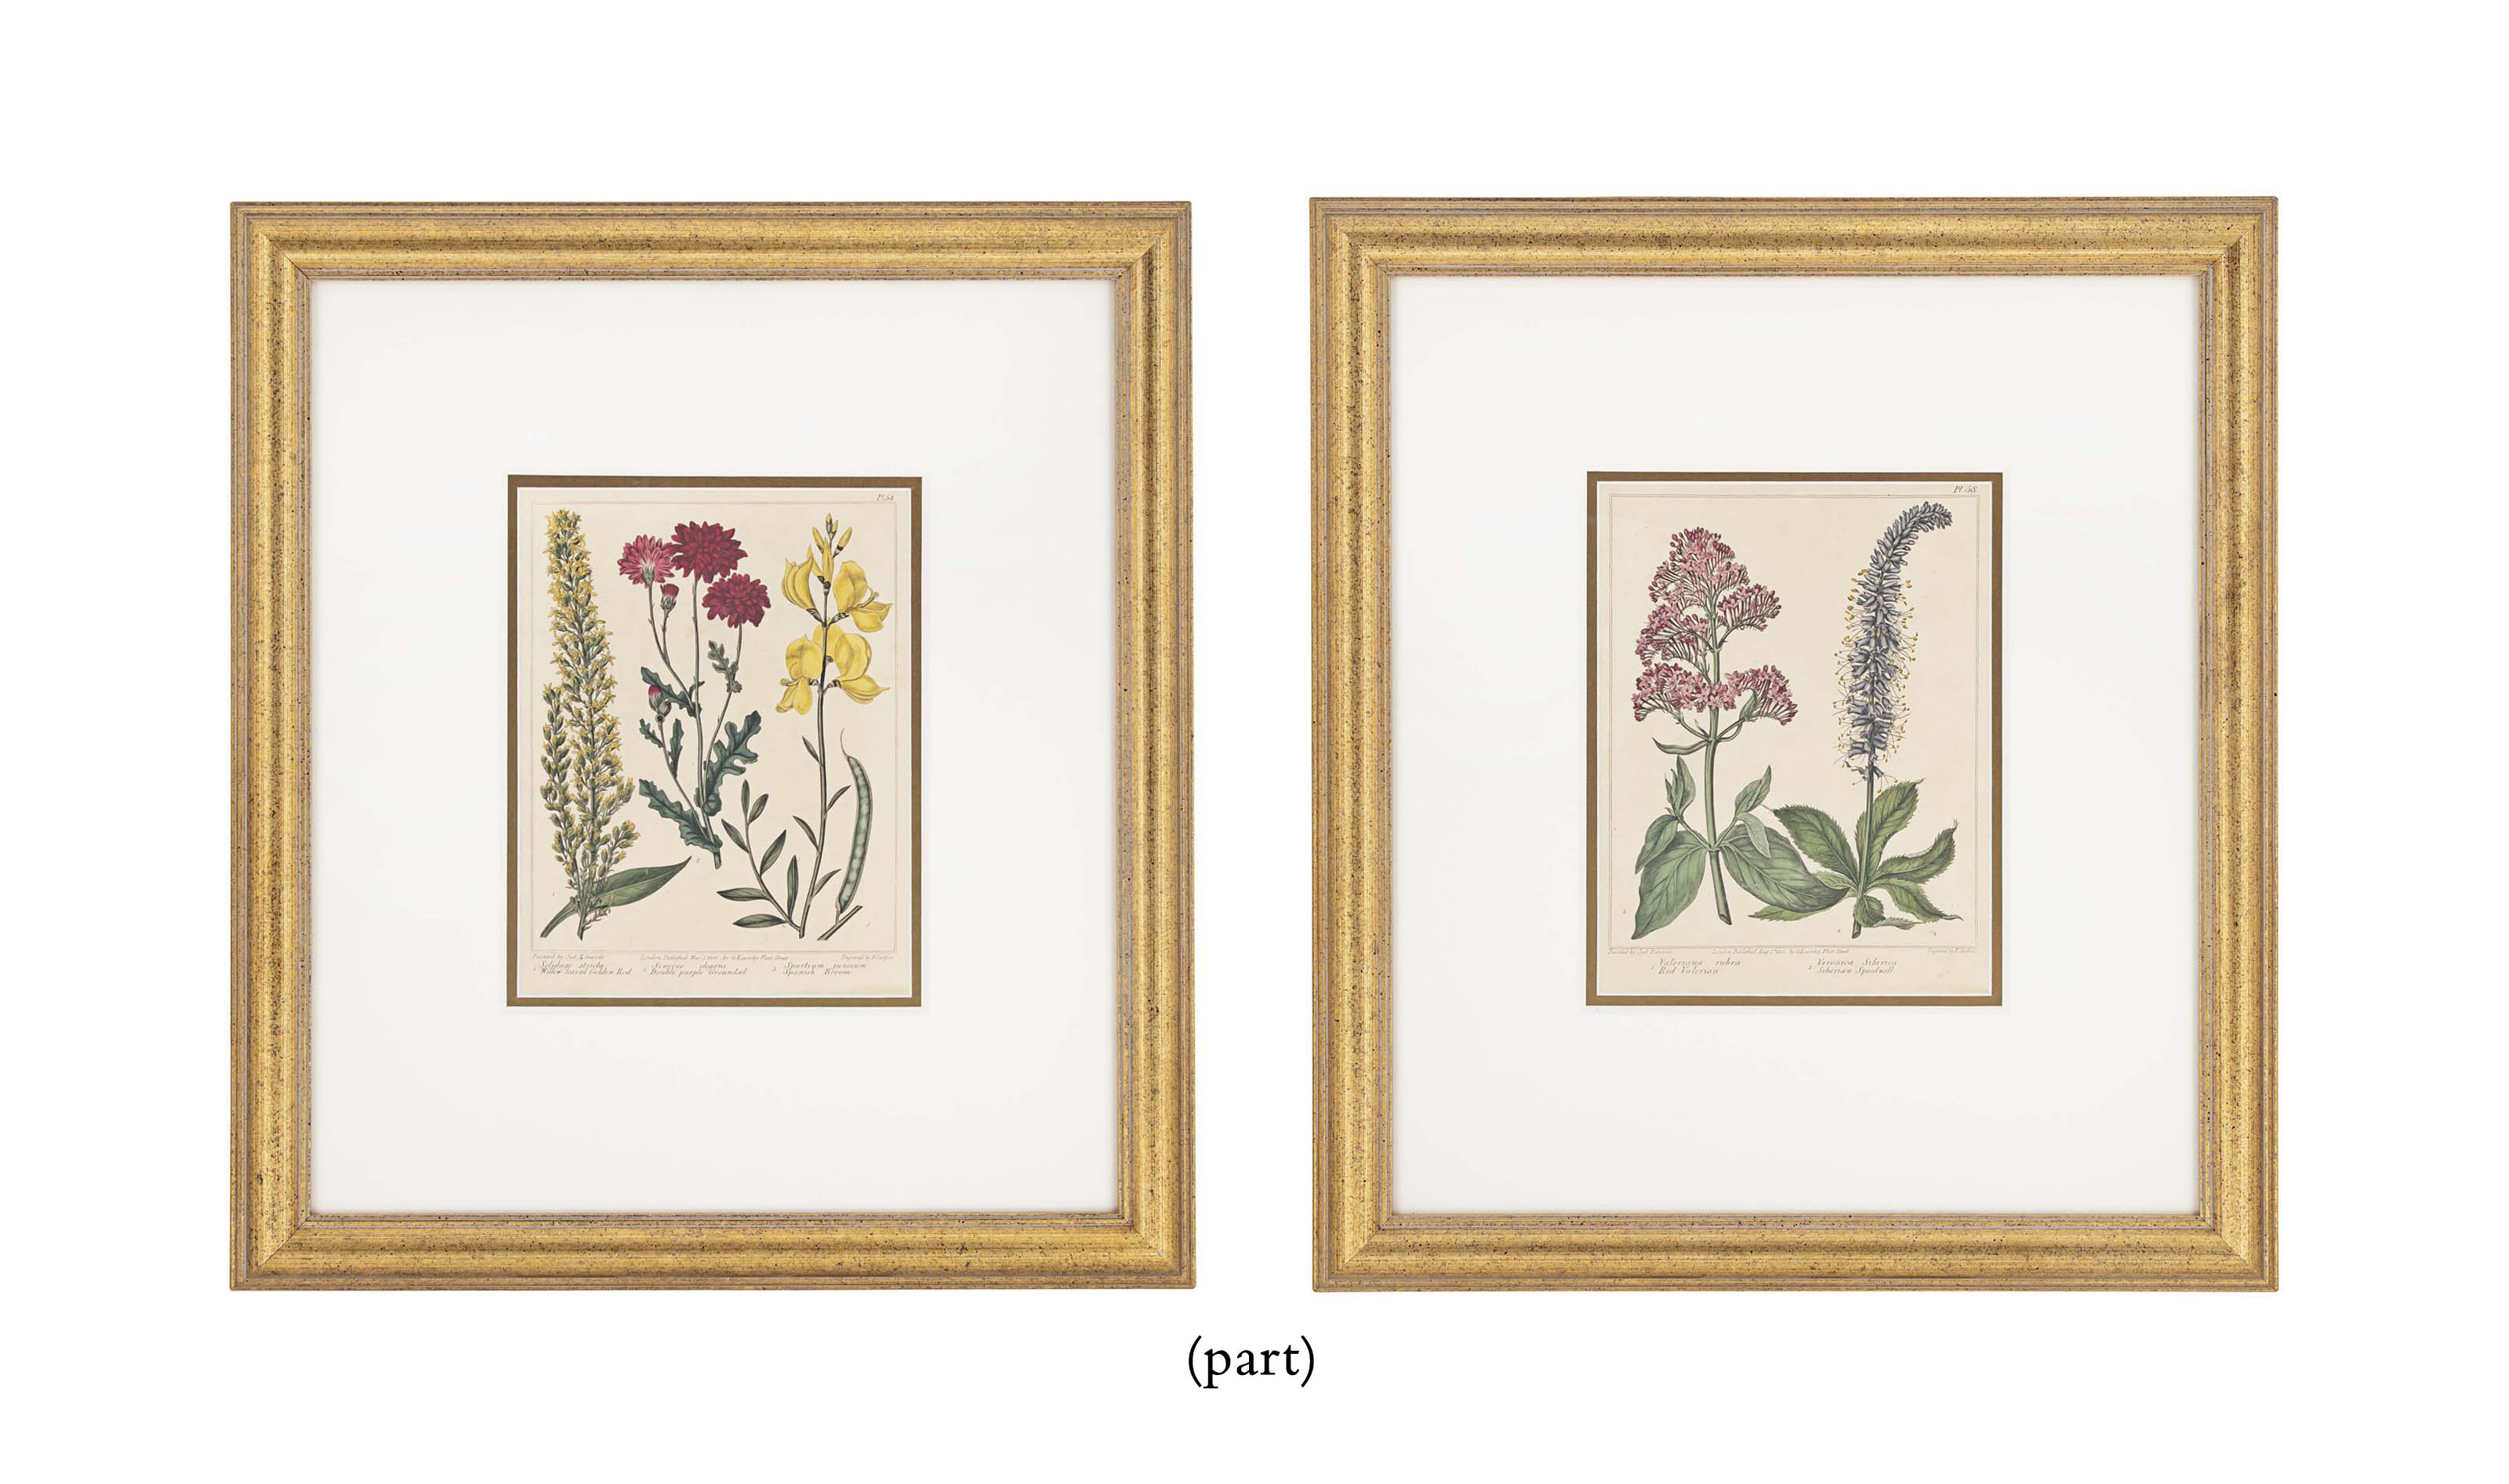 TWELVE HAND-COLOURED ENGRAVINGS FROM 'A COMPLETE DICTIONARY OF PRACTICAL GARDENING COMPREHENDING ALL THE MODERN MOVEMENTS IN THE ART'